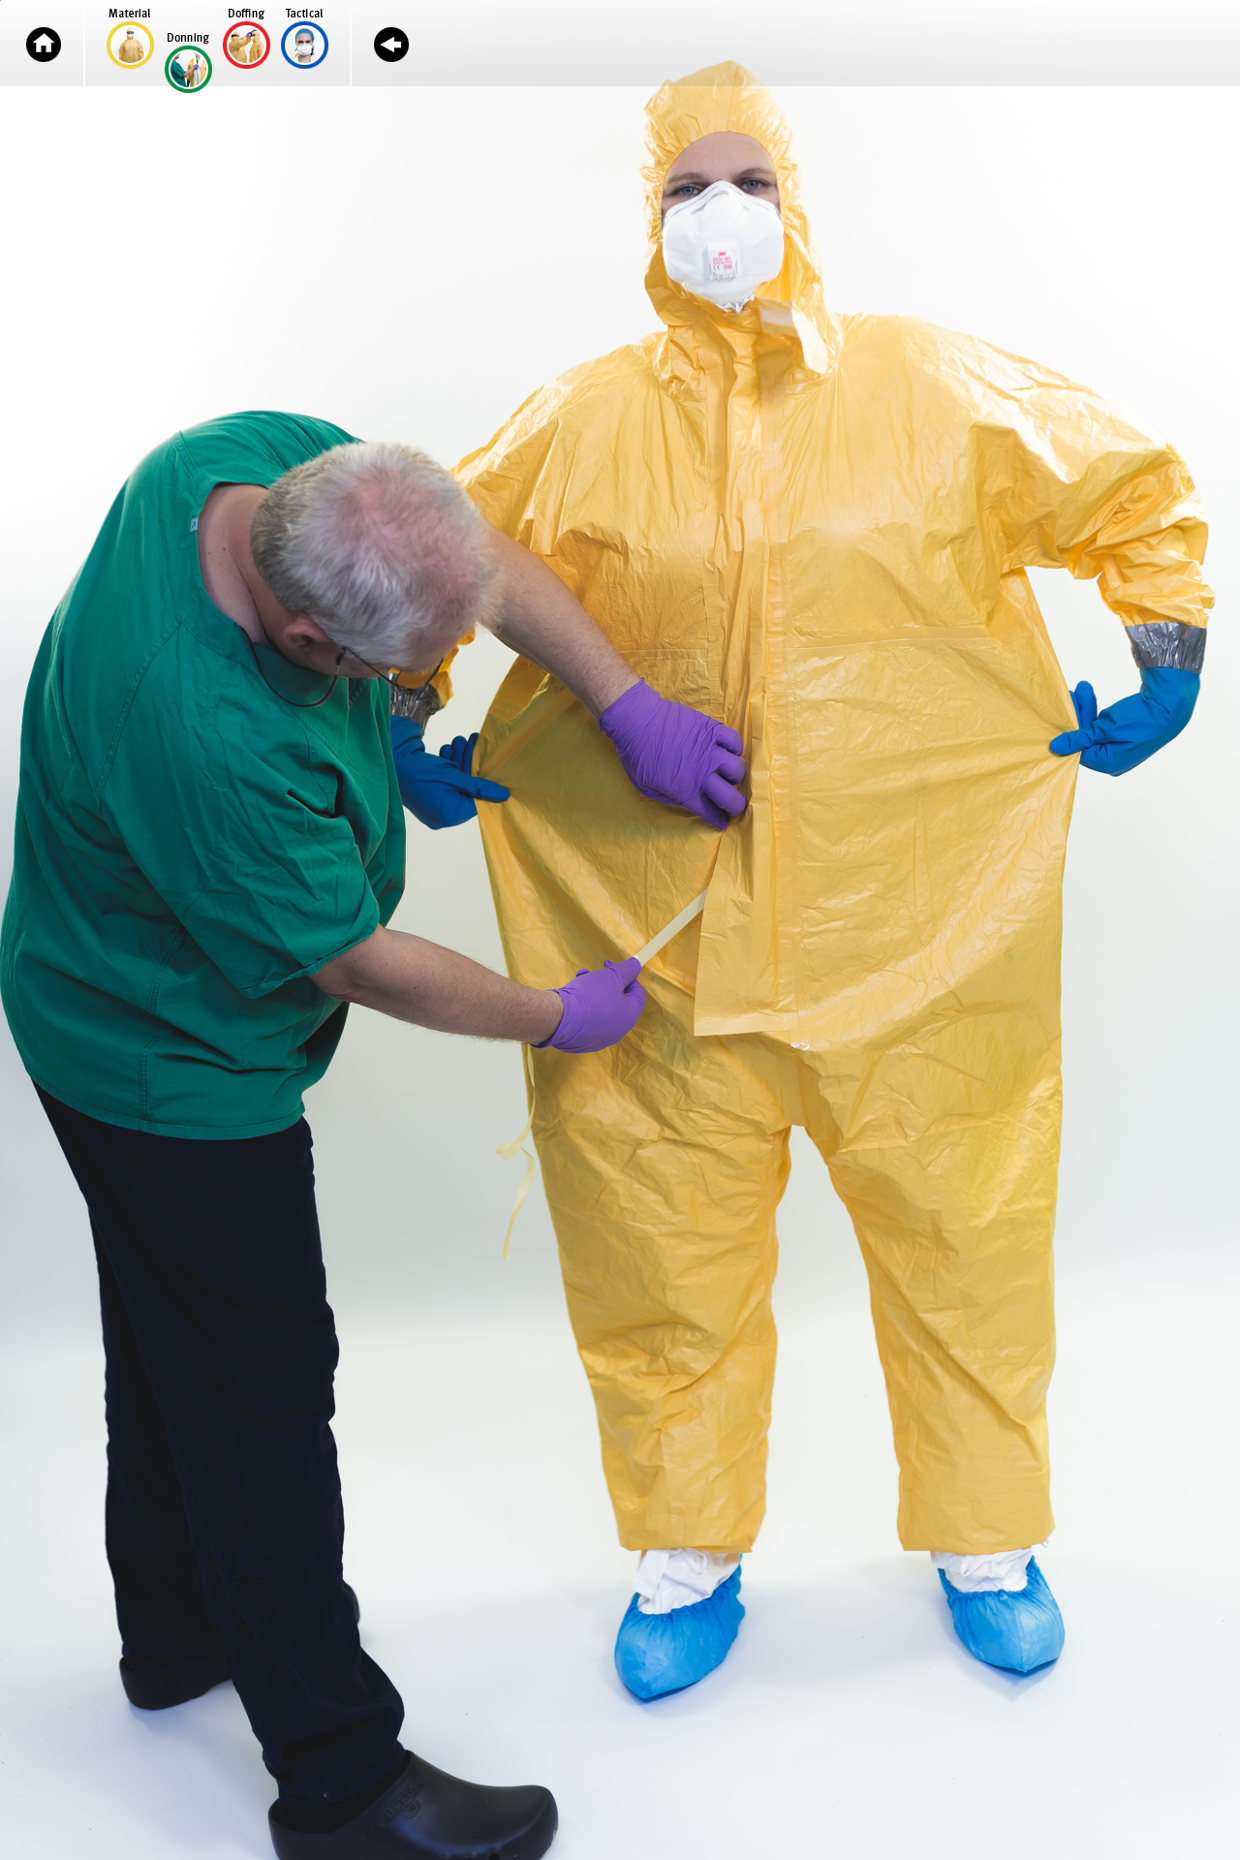 Visuals from ECDC tutorial on the safe use of PPE: DONNING